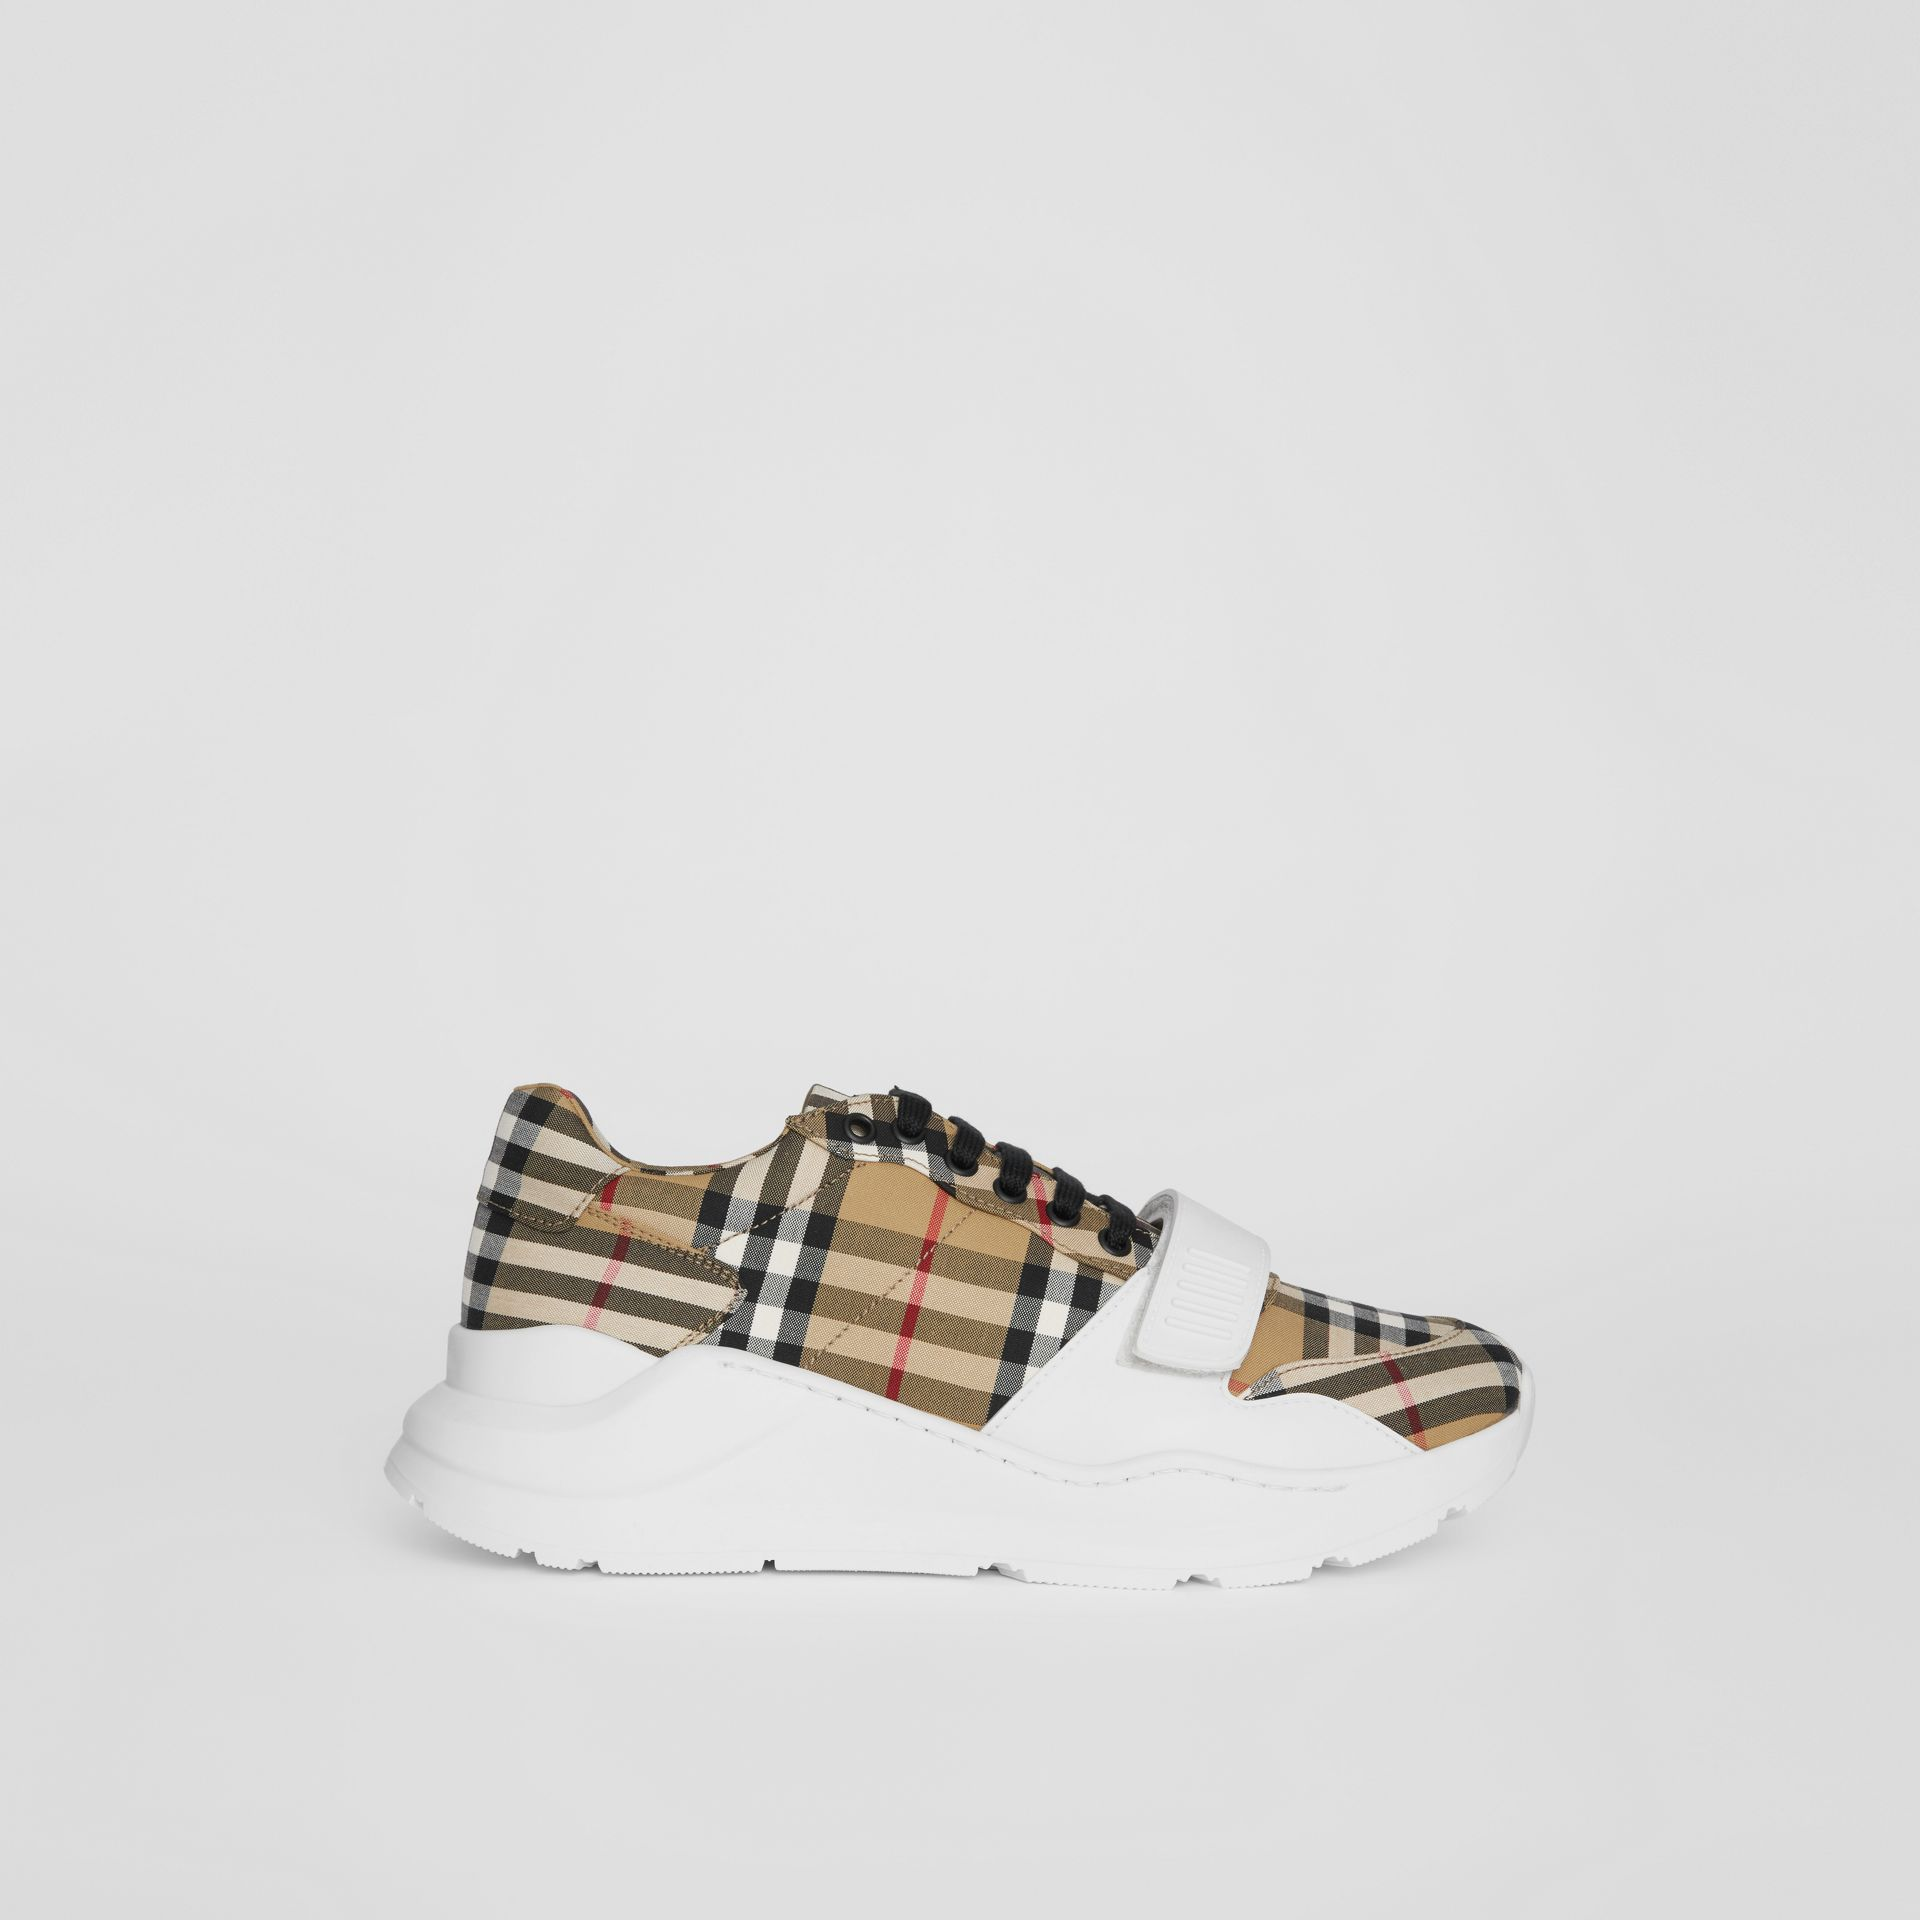 Sneakers en coton Vintage check (Jaune Antique) - Homme | Burberry Canada - photo de la galerie 5